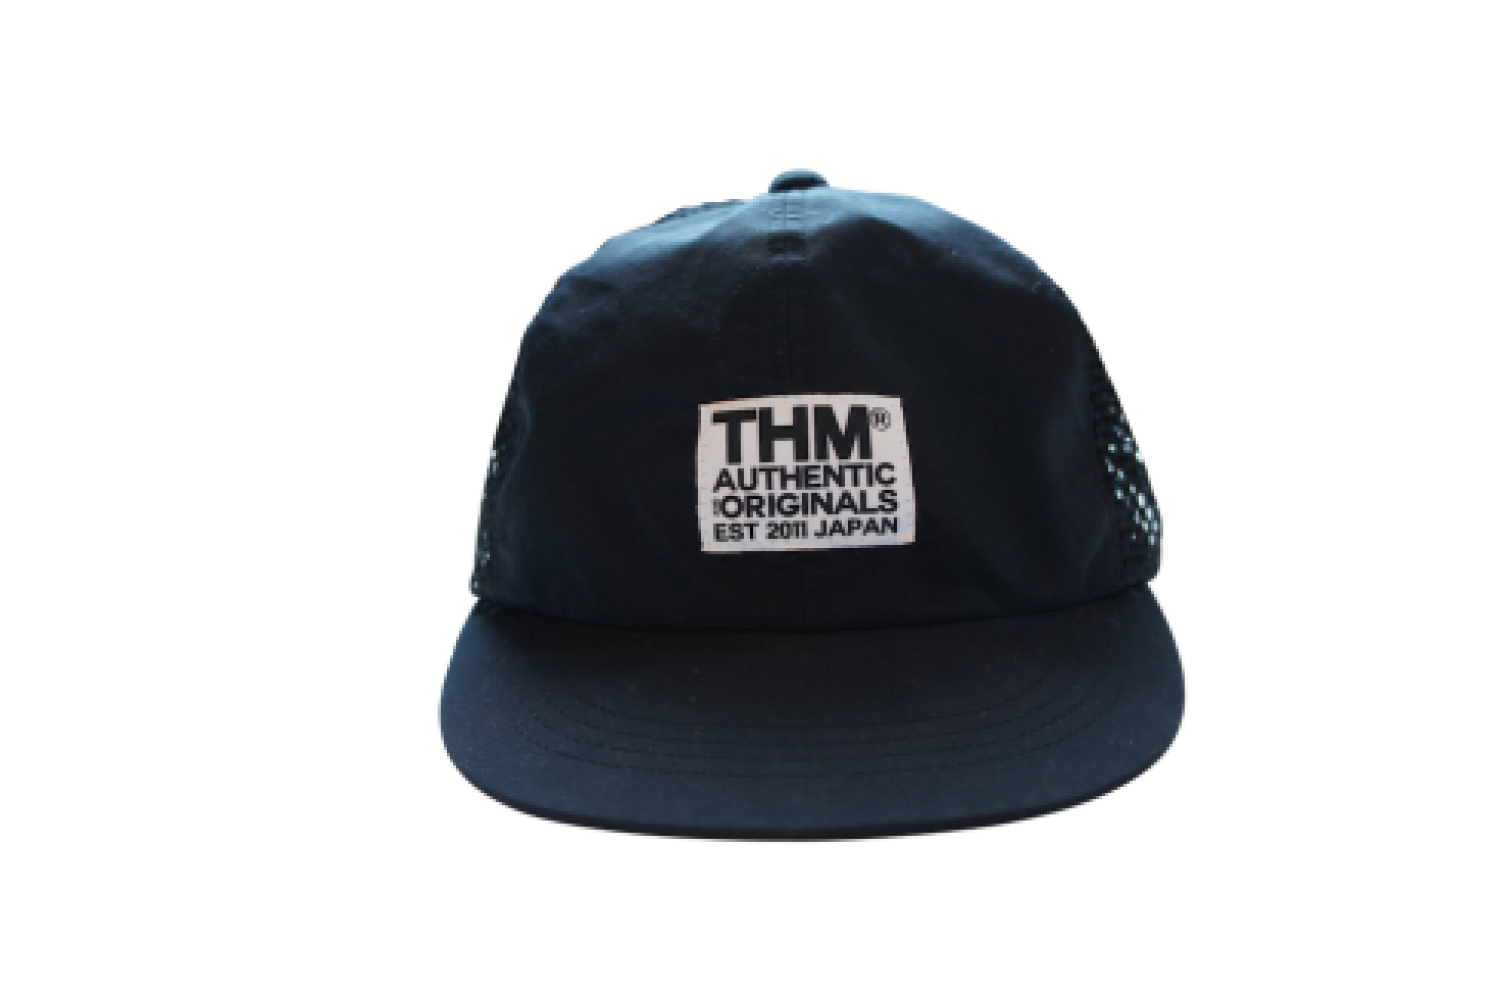 [THE HARD MAN] THM logo water cap BLK